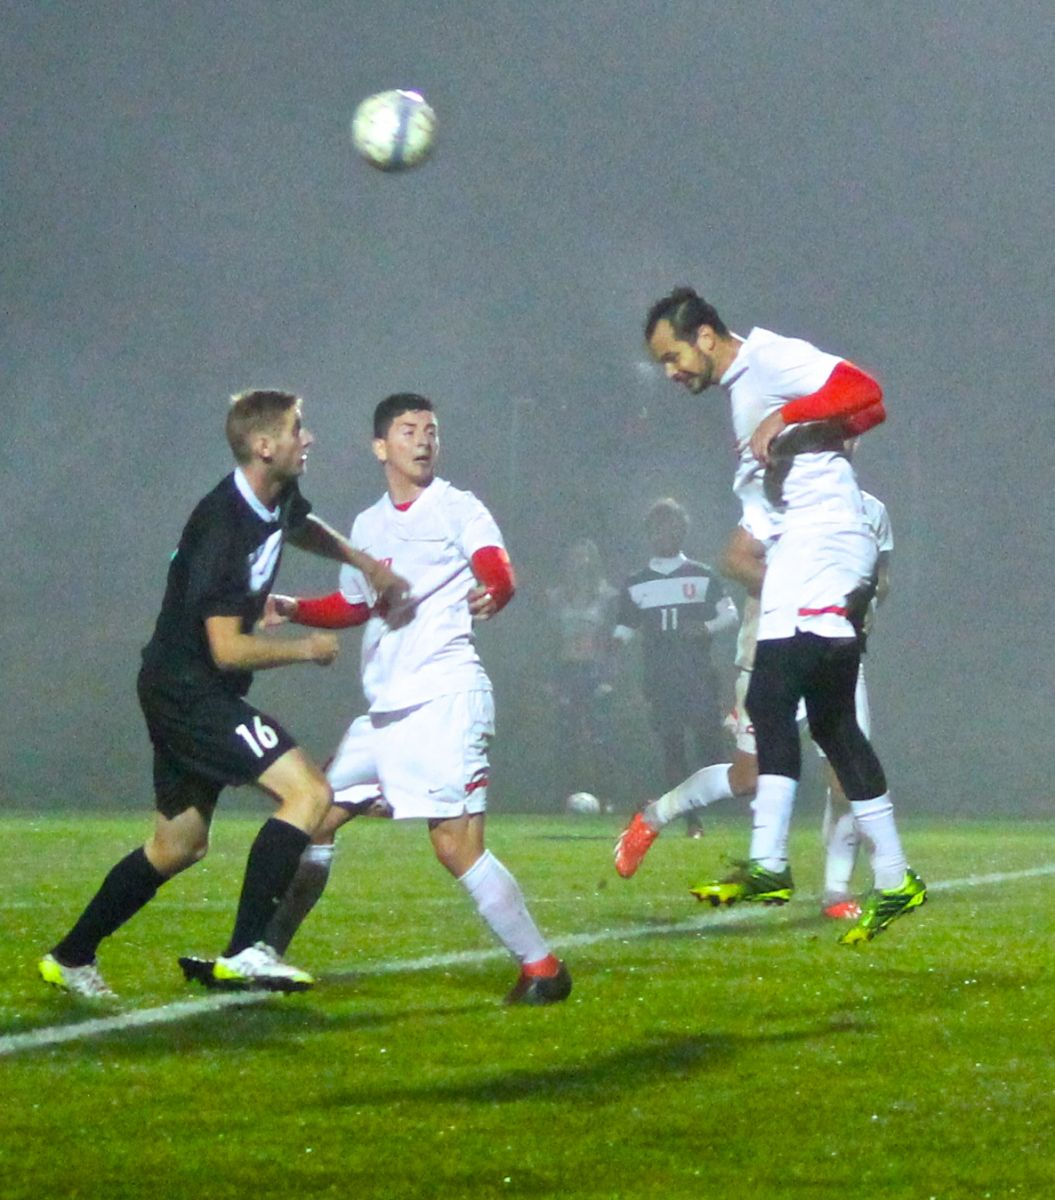 Rio's Heitor de Melo heads a ball forward through the fog during Wednesday night's win over Union